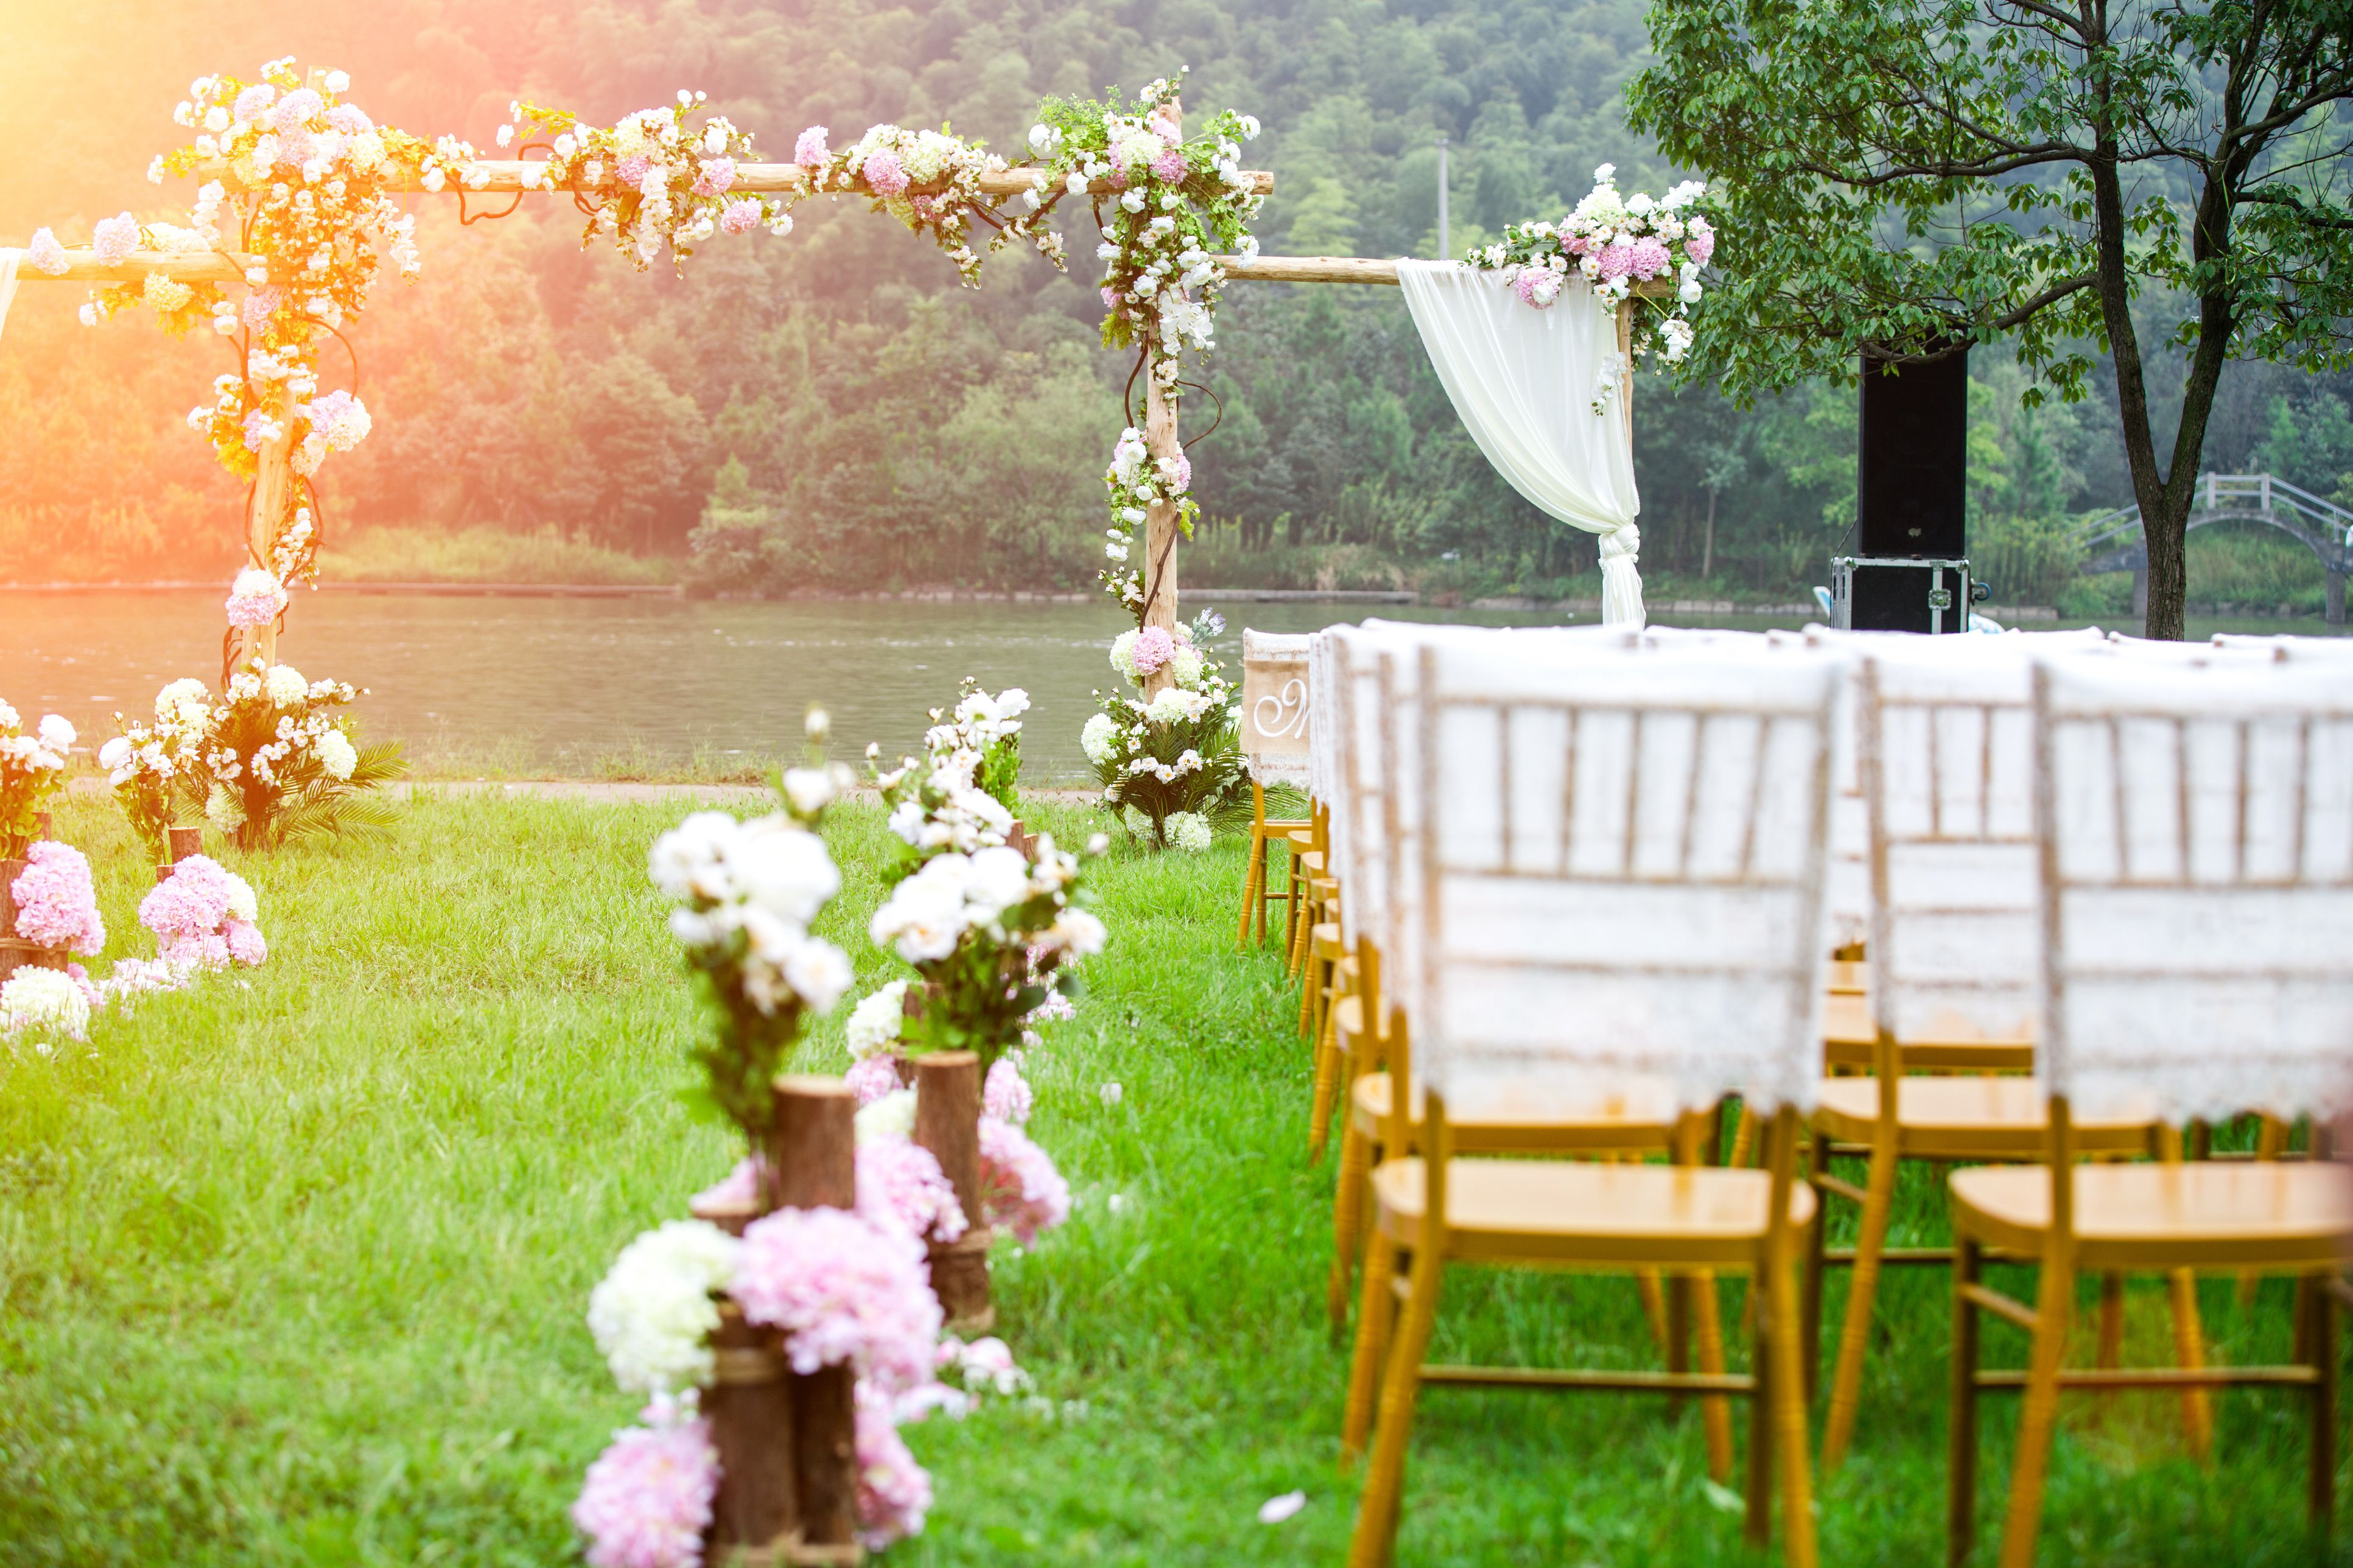 Outdoor Wedding Ideas Tips From The Experts: What To Know When Attending An Outdoor Wedding In The Summer